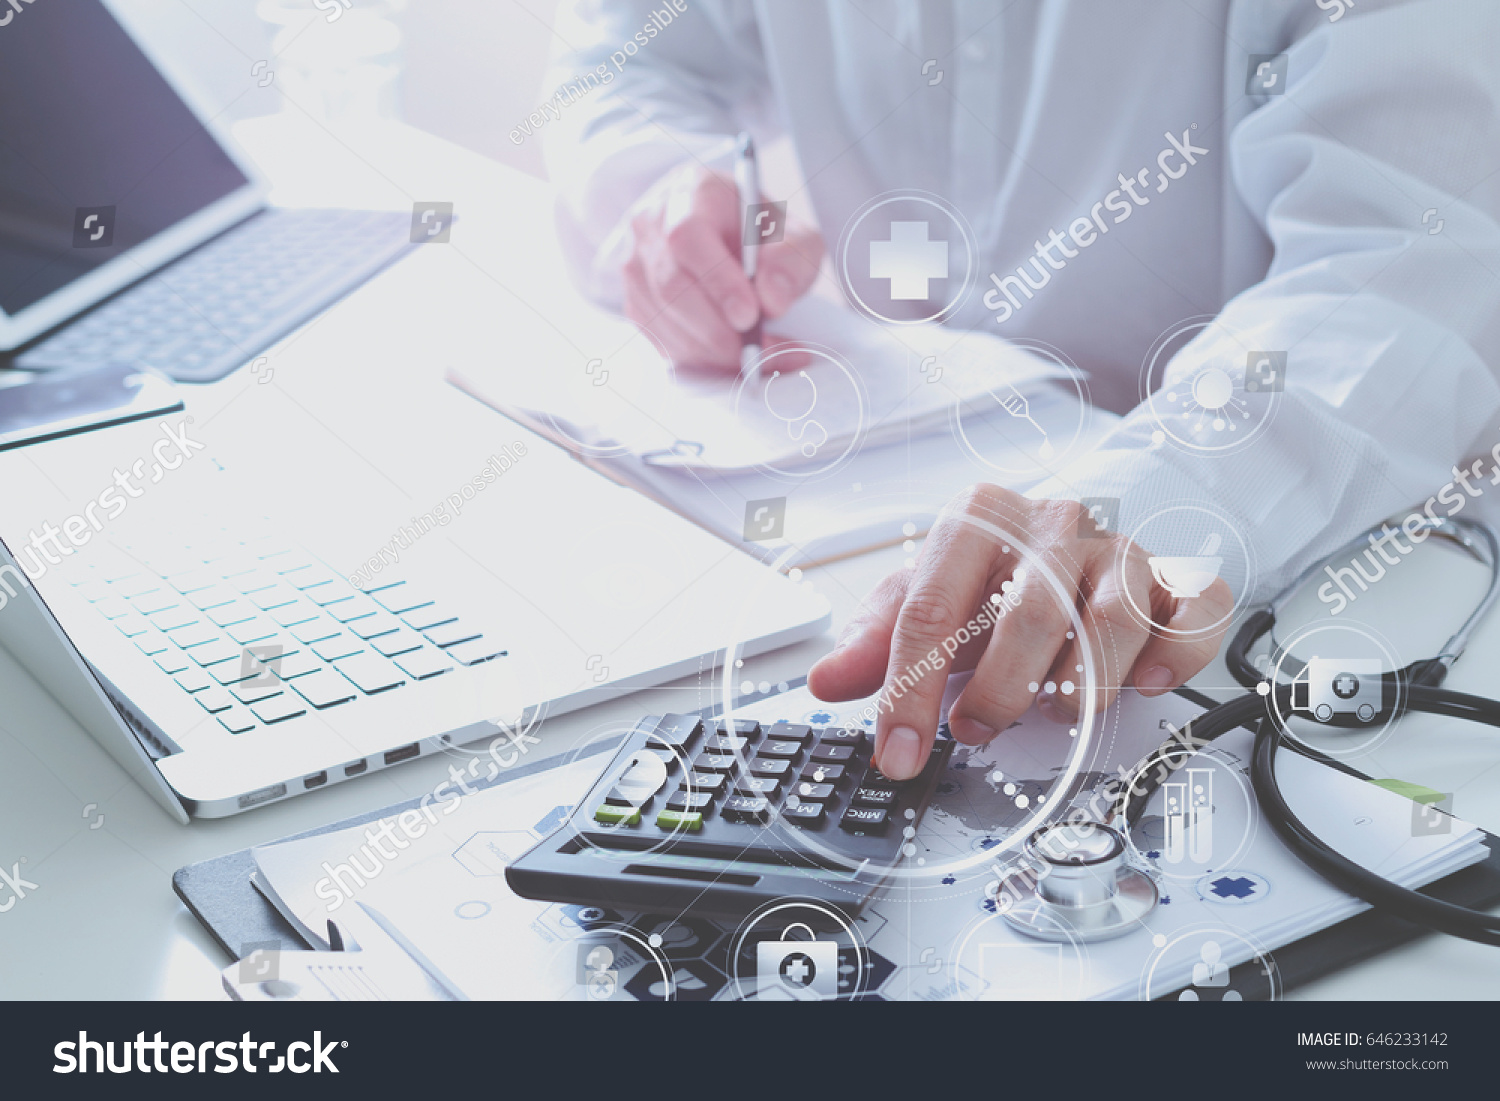 Photo license fee calculator - Healthcare Costs And Fees Concept Hand Of Smart Doctor Used A Calculator For Medical Costs